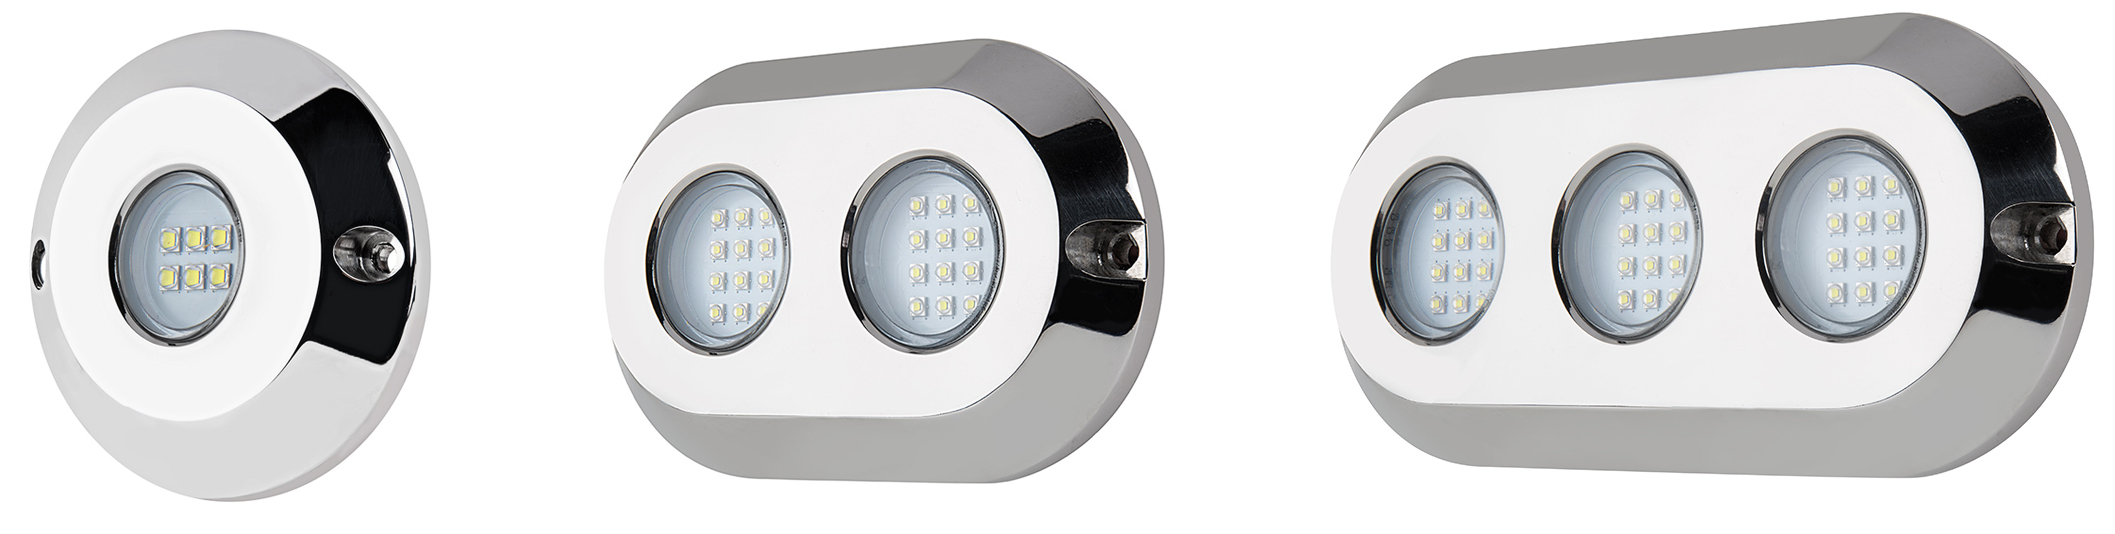 father's day gifts - LED Underwater Lights